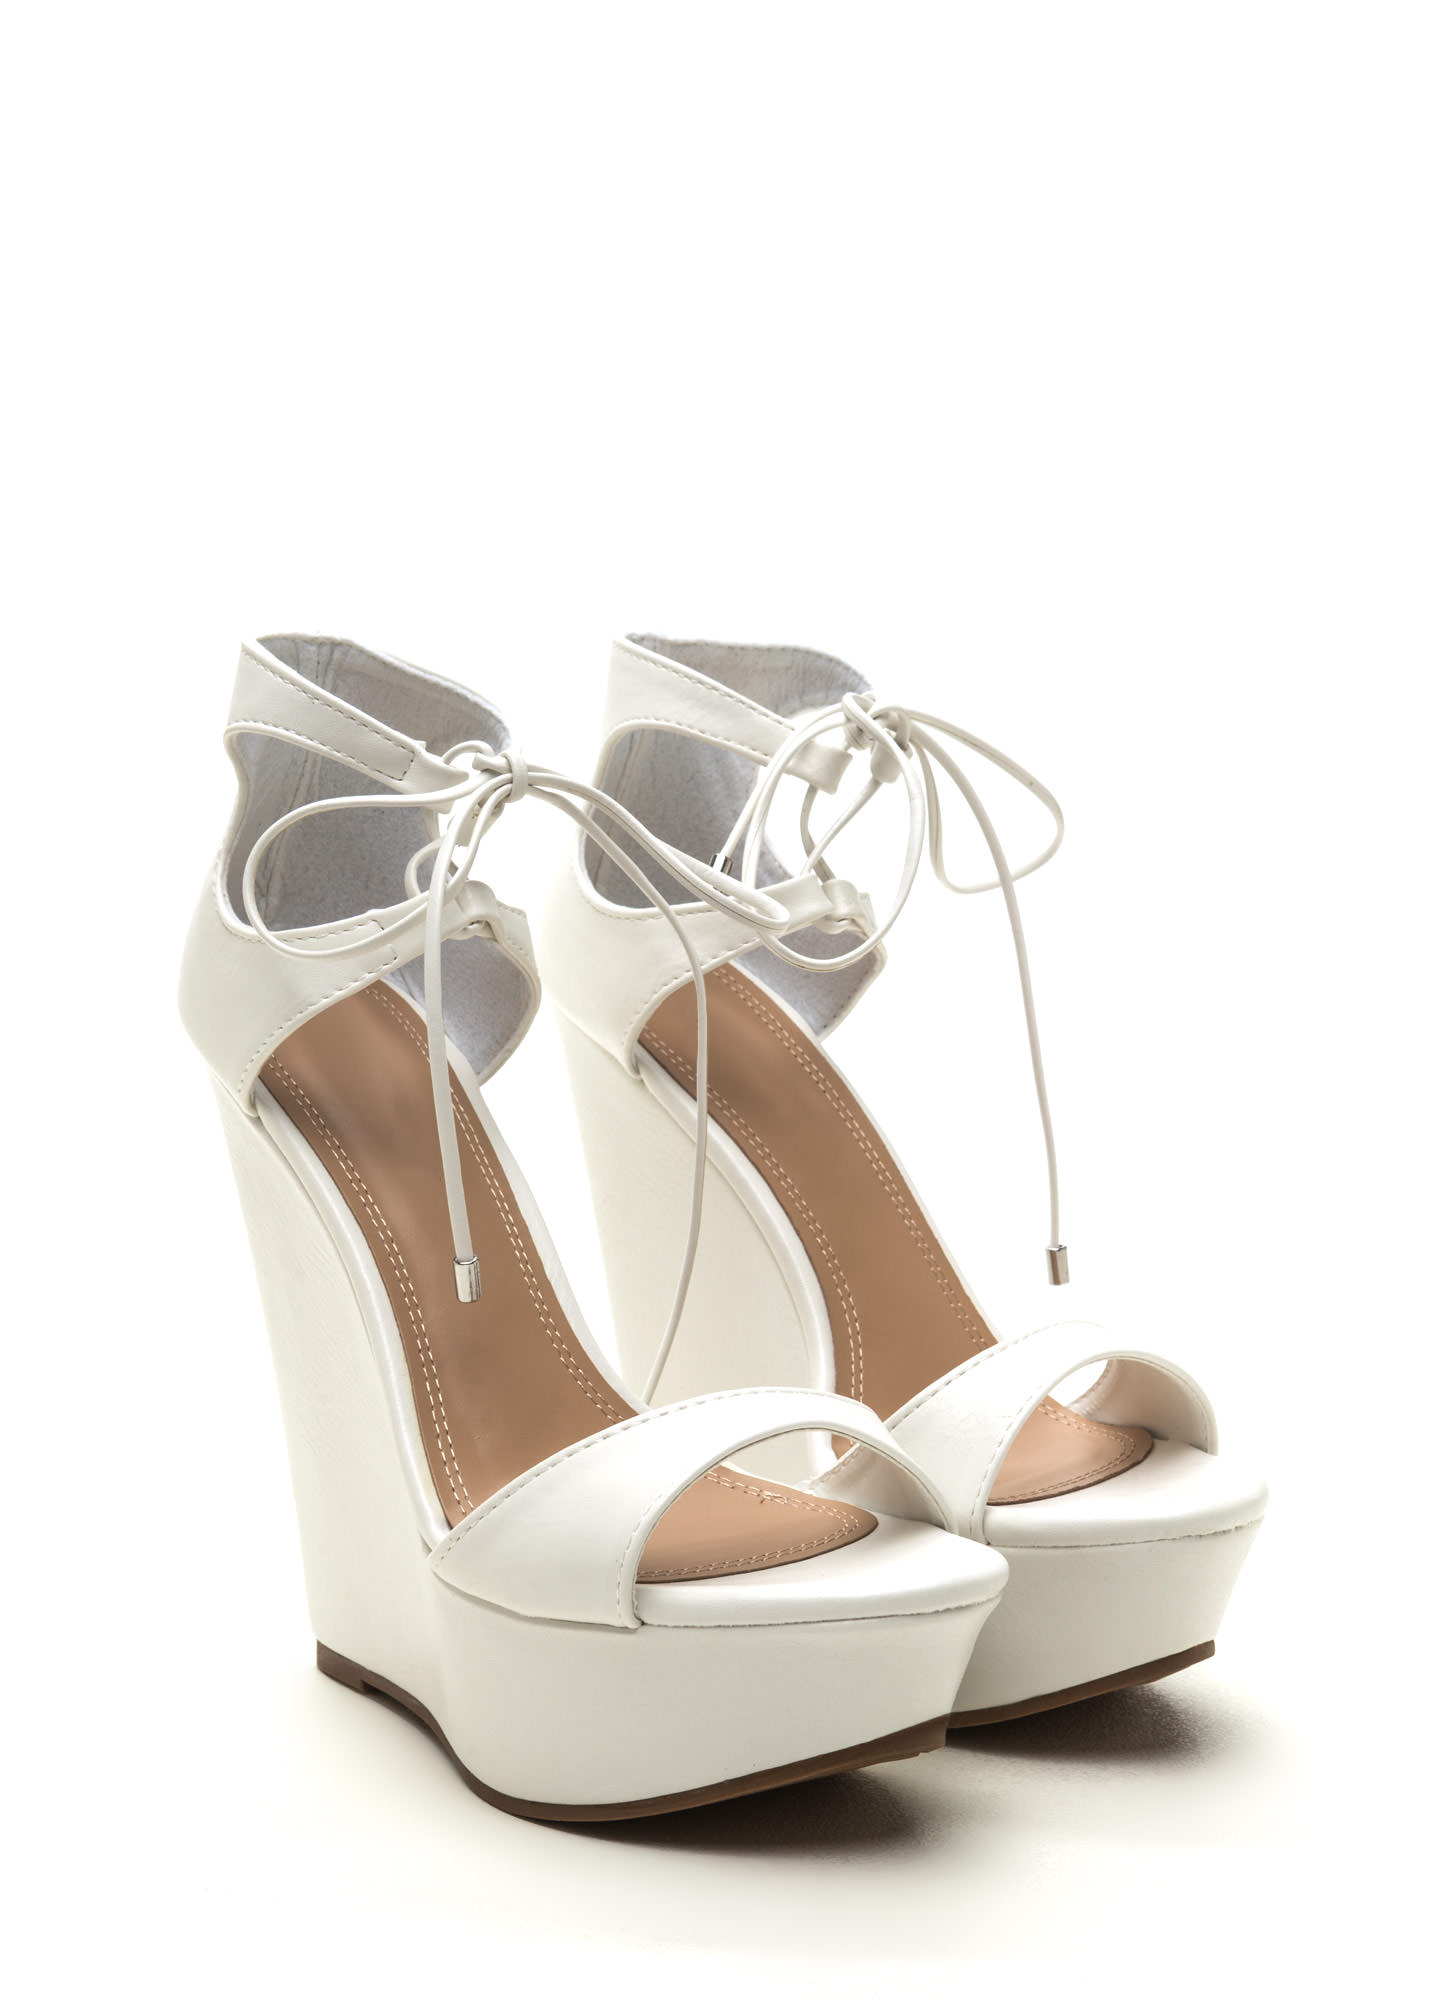 Confident Strut Lace-Up Platform Wedges WHITE